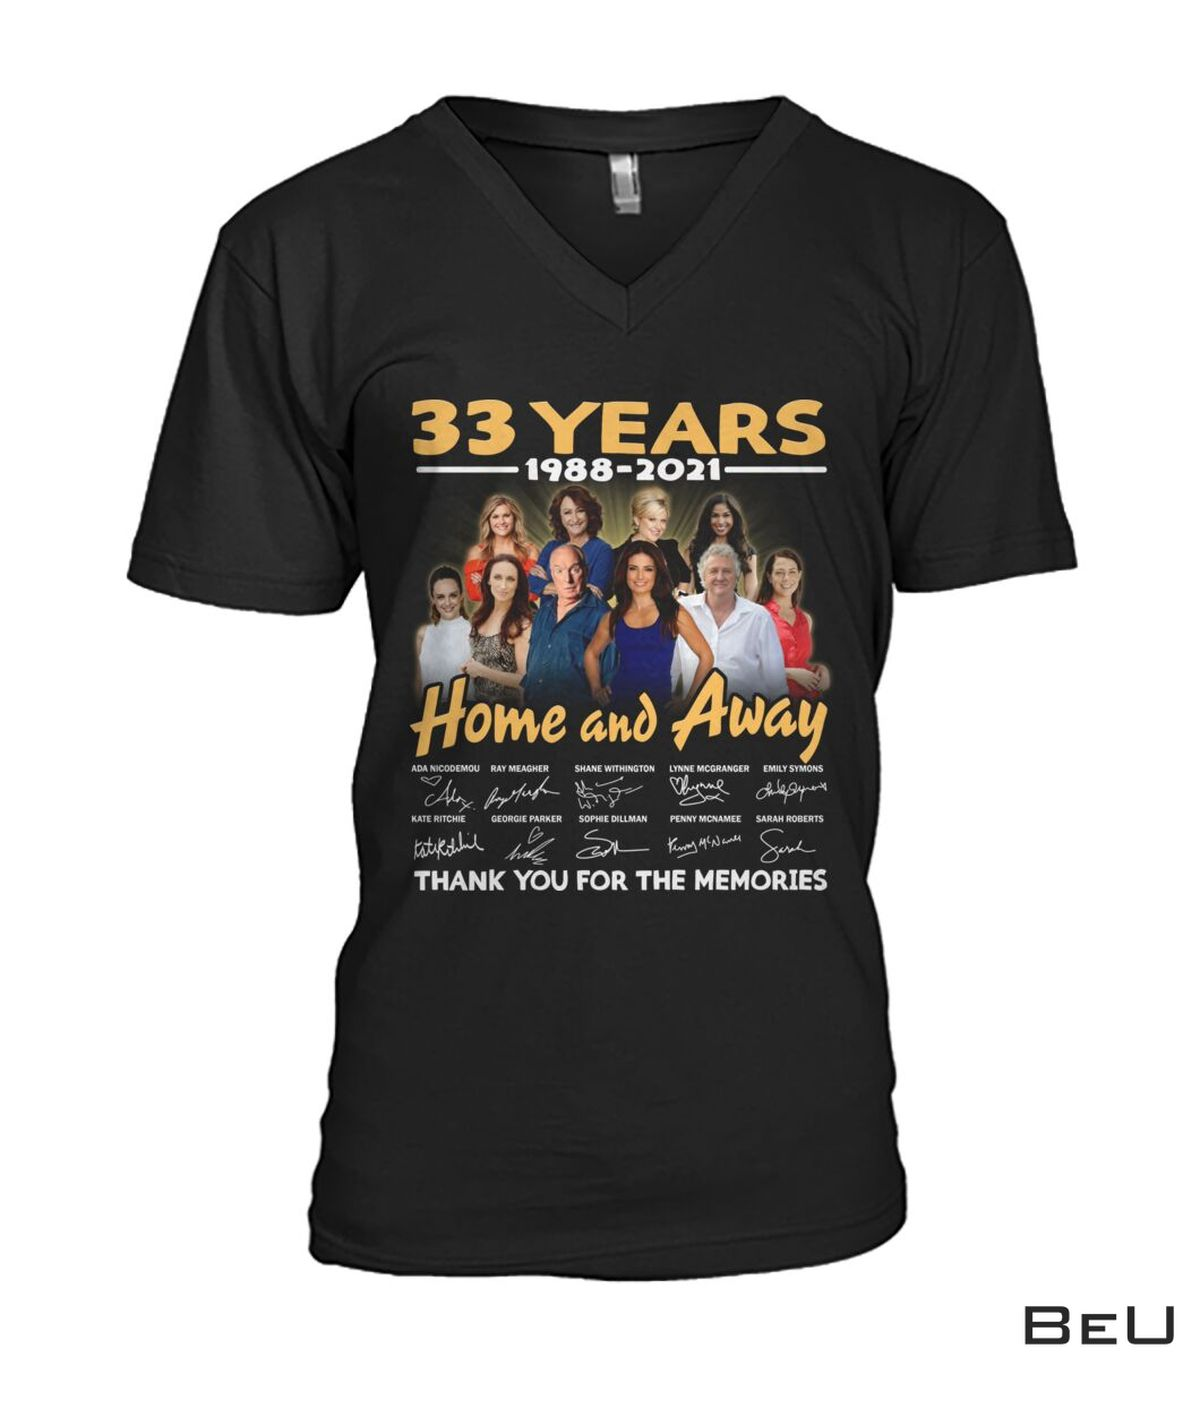 Print On Demand 33 Years Home And Away Thank You For The Memories Shirt, hoodie, tank top